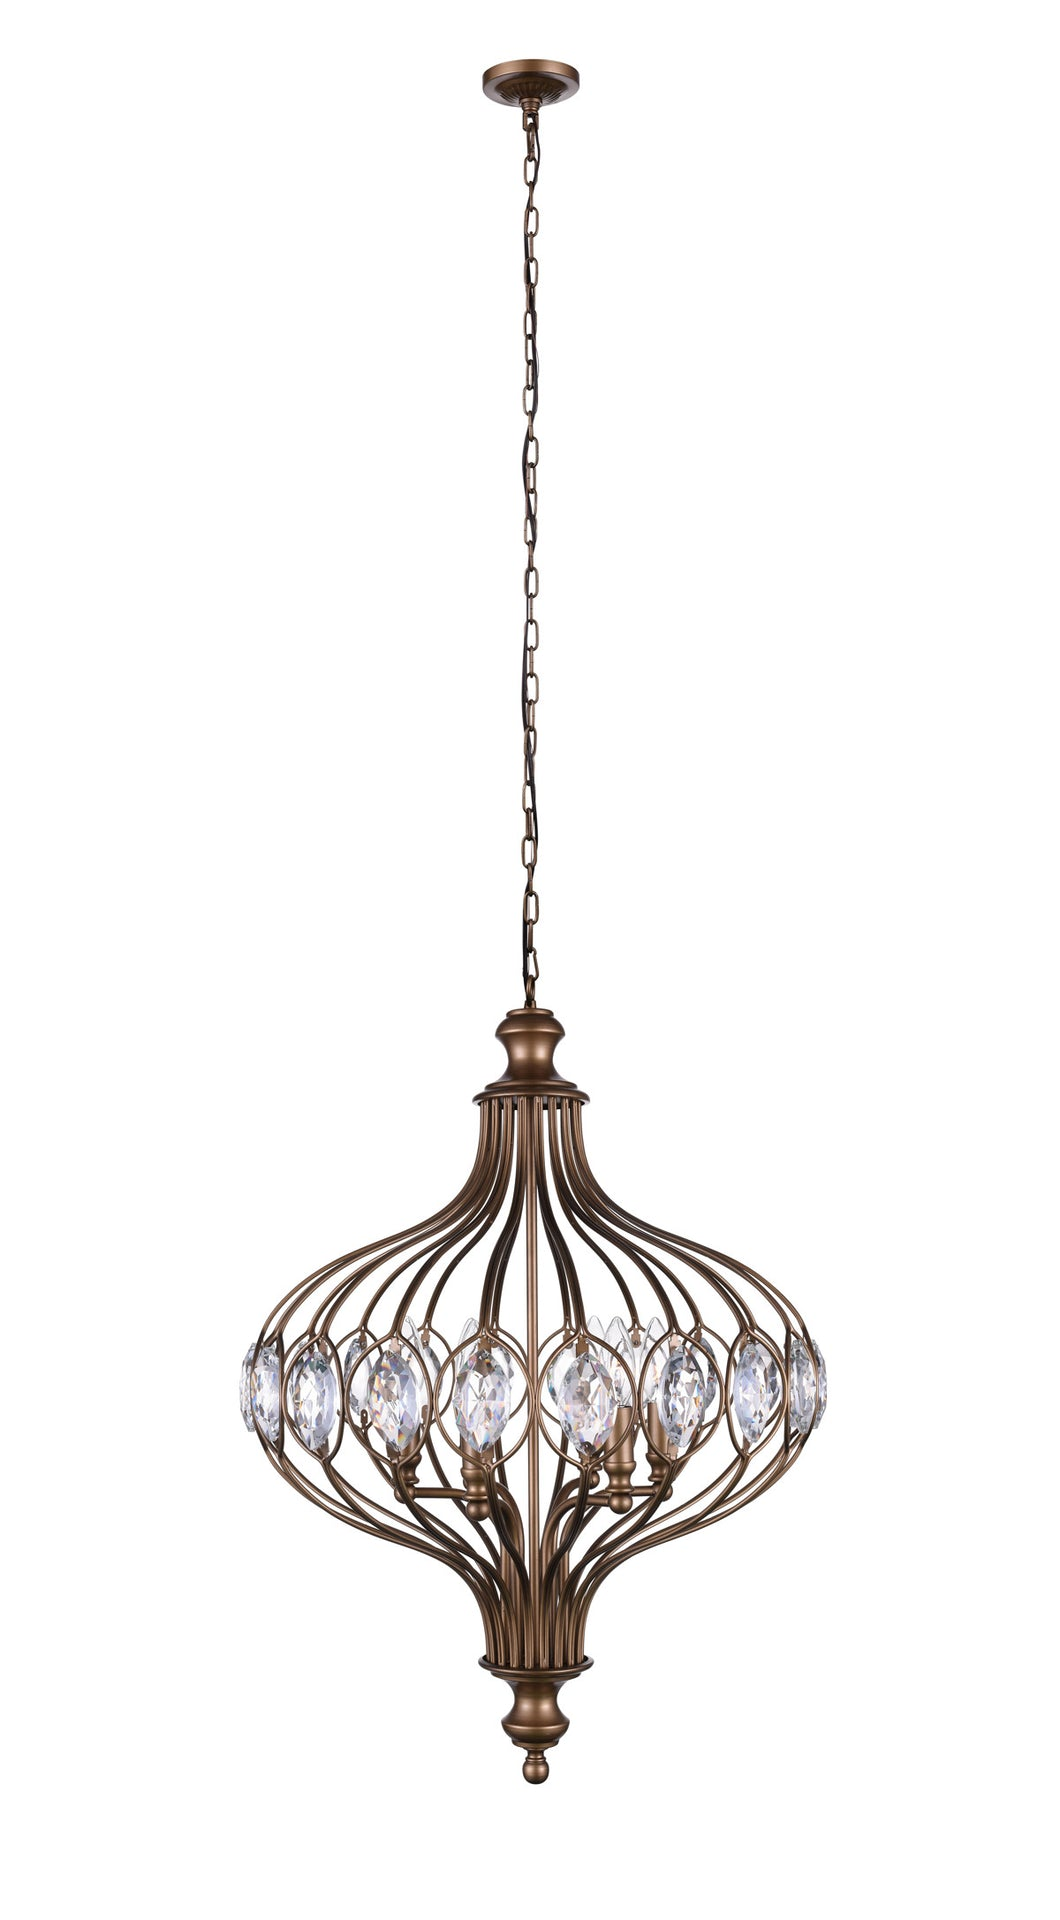 3 Light  Chandelier with Antique Bronze finish